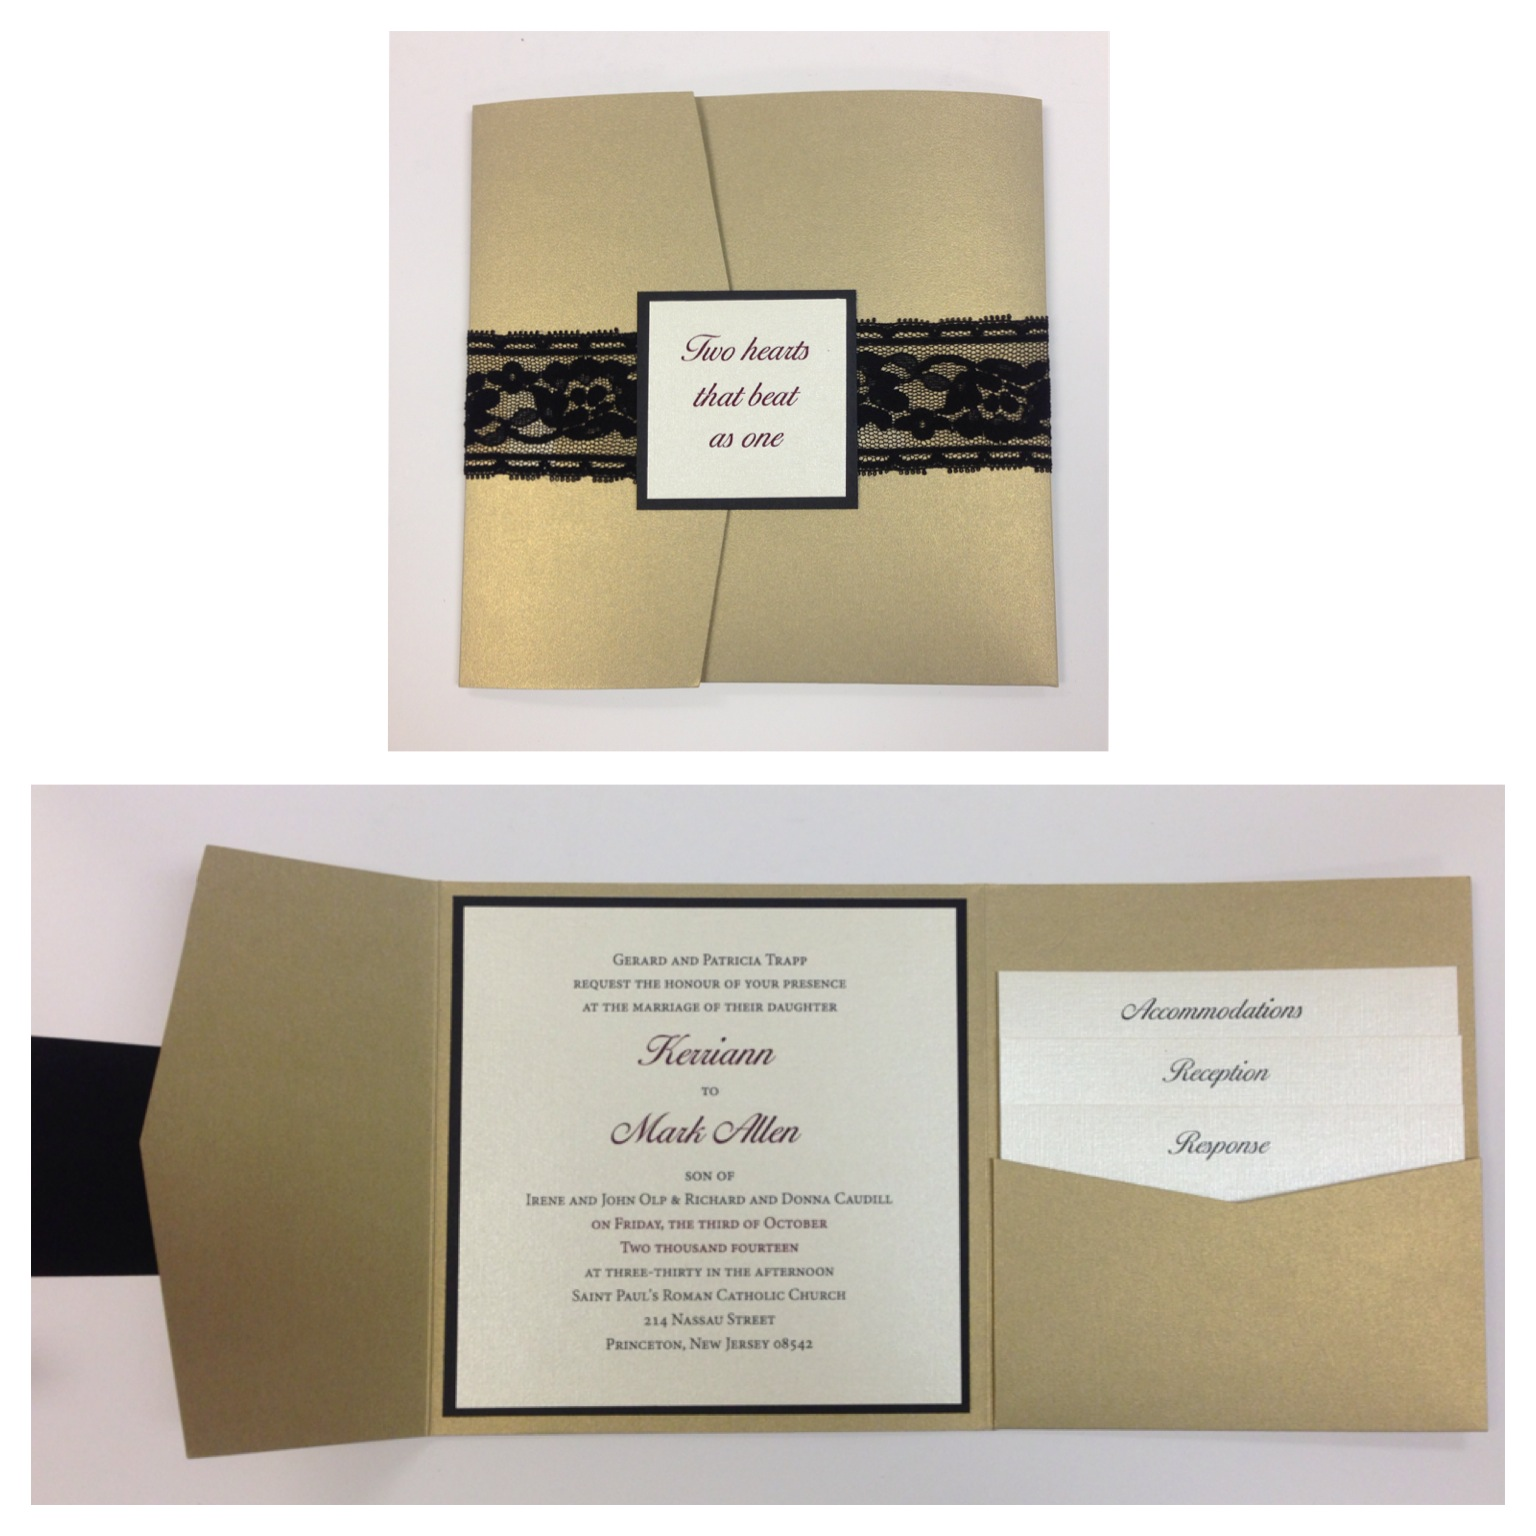 Wedding Invitations Nj is luxury invitations design